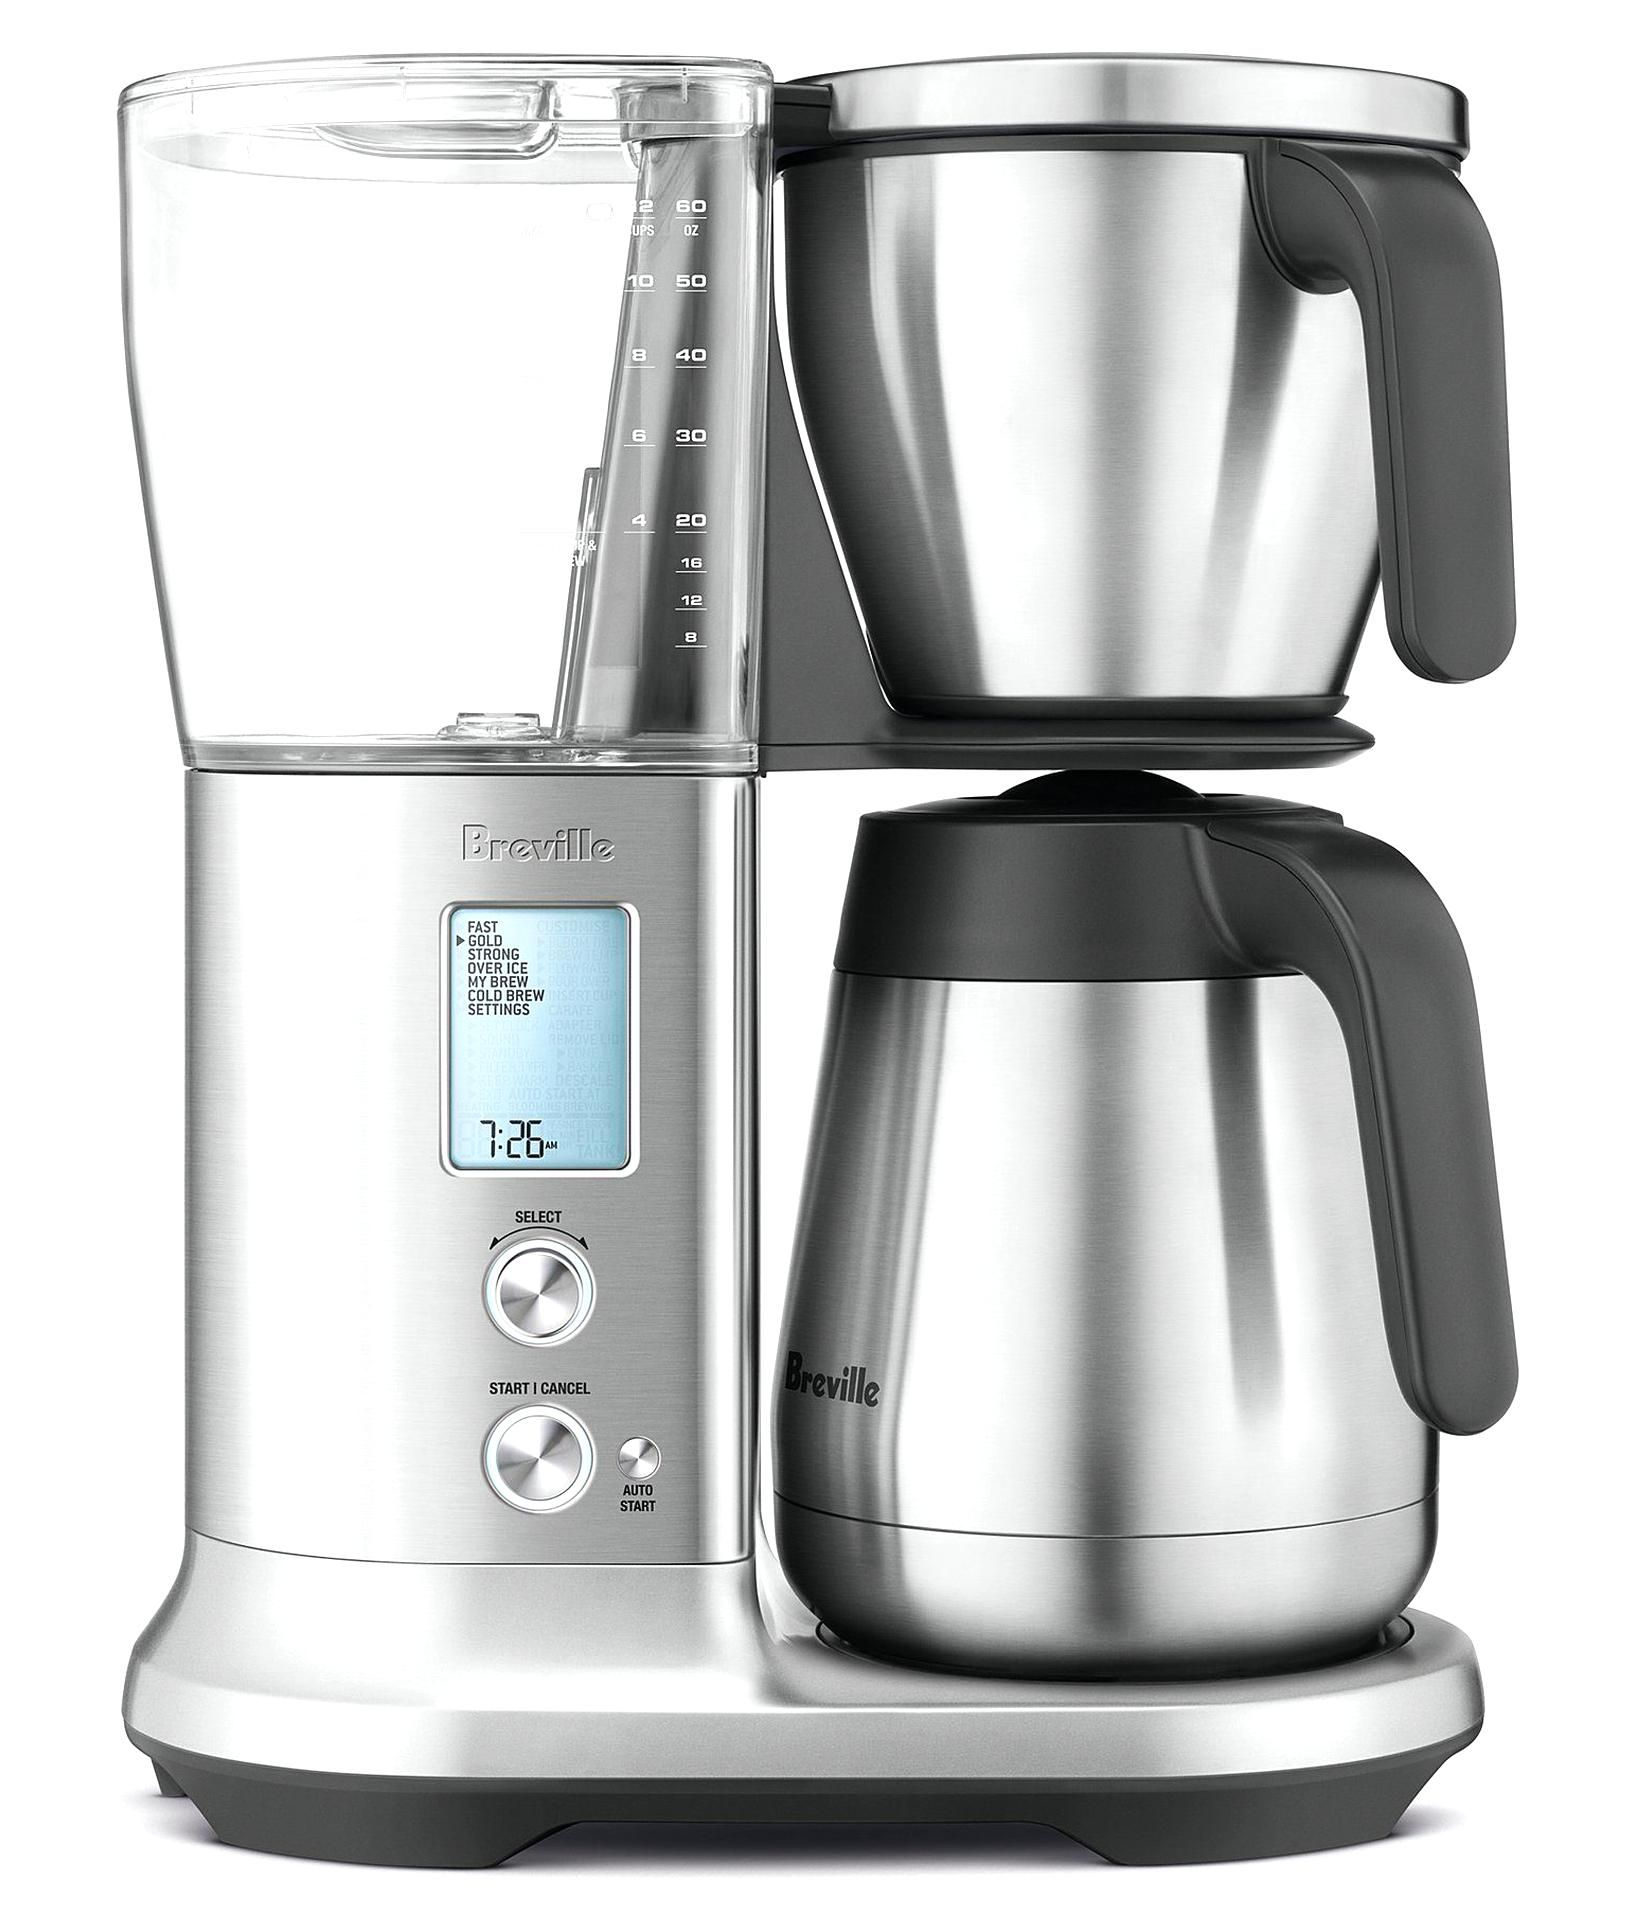 From Breville X2c The Precision Brewer Thermal Coffee Maker Features6 Preset Modes Include Gold Cup Certified By Sca X2c Pre In 2020 Breville Glass Carafe Coffee Maker